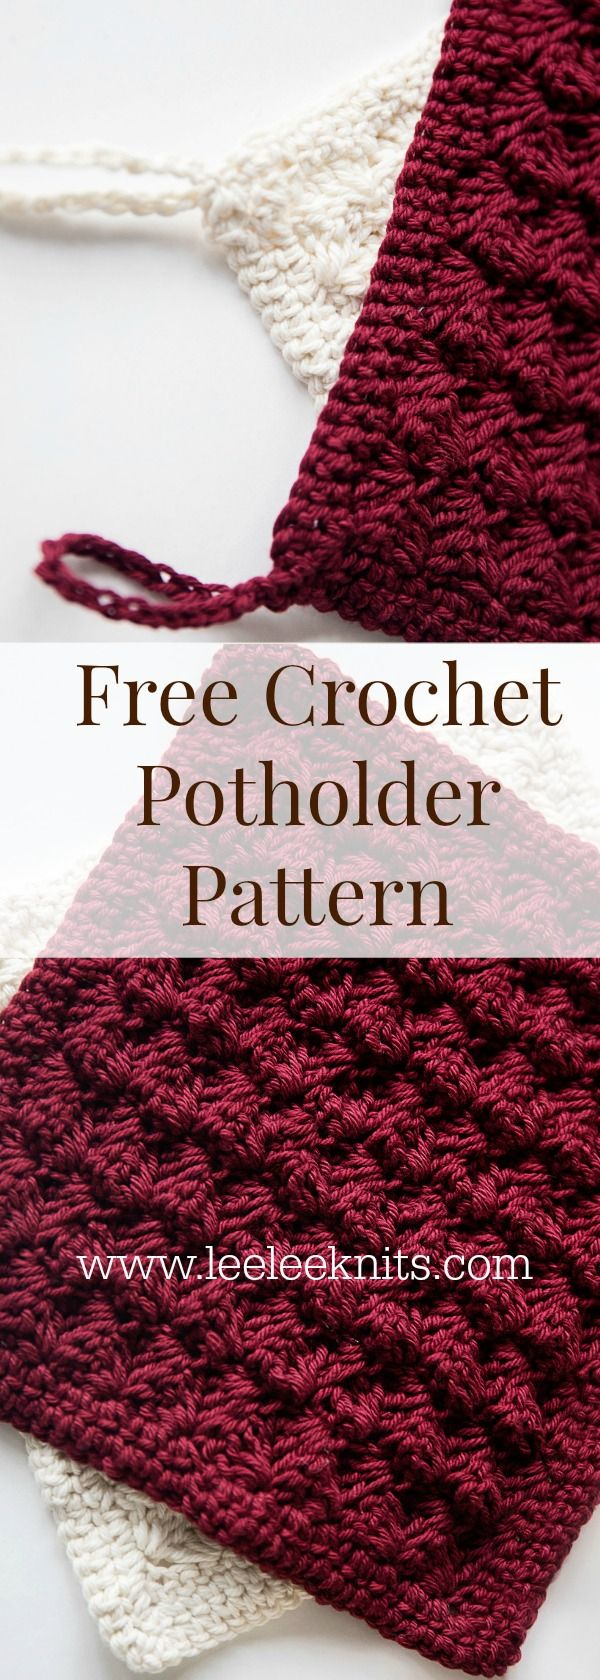 Decorative Potholder Crochet Pattern